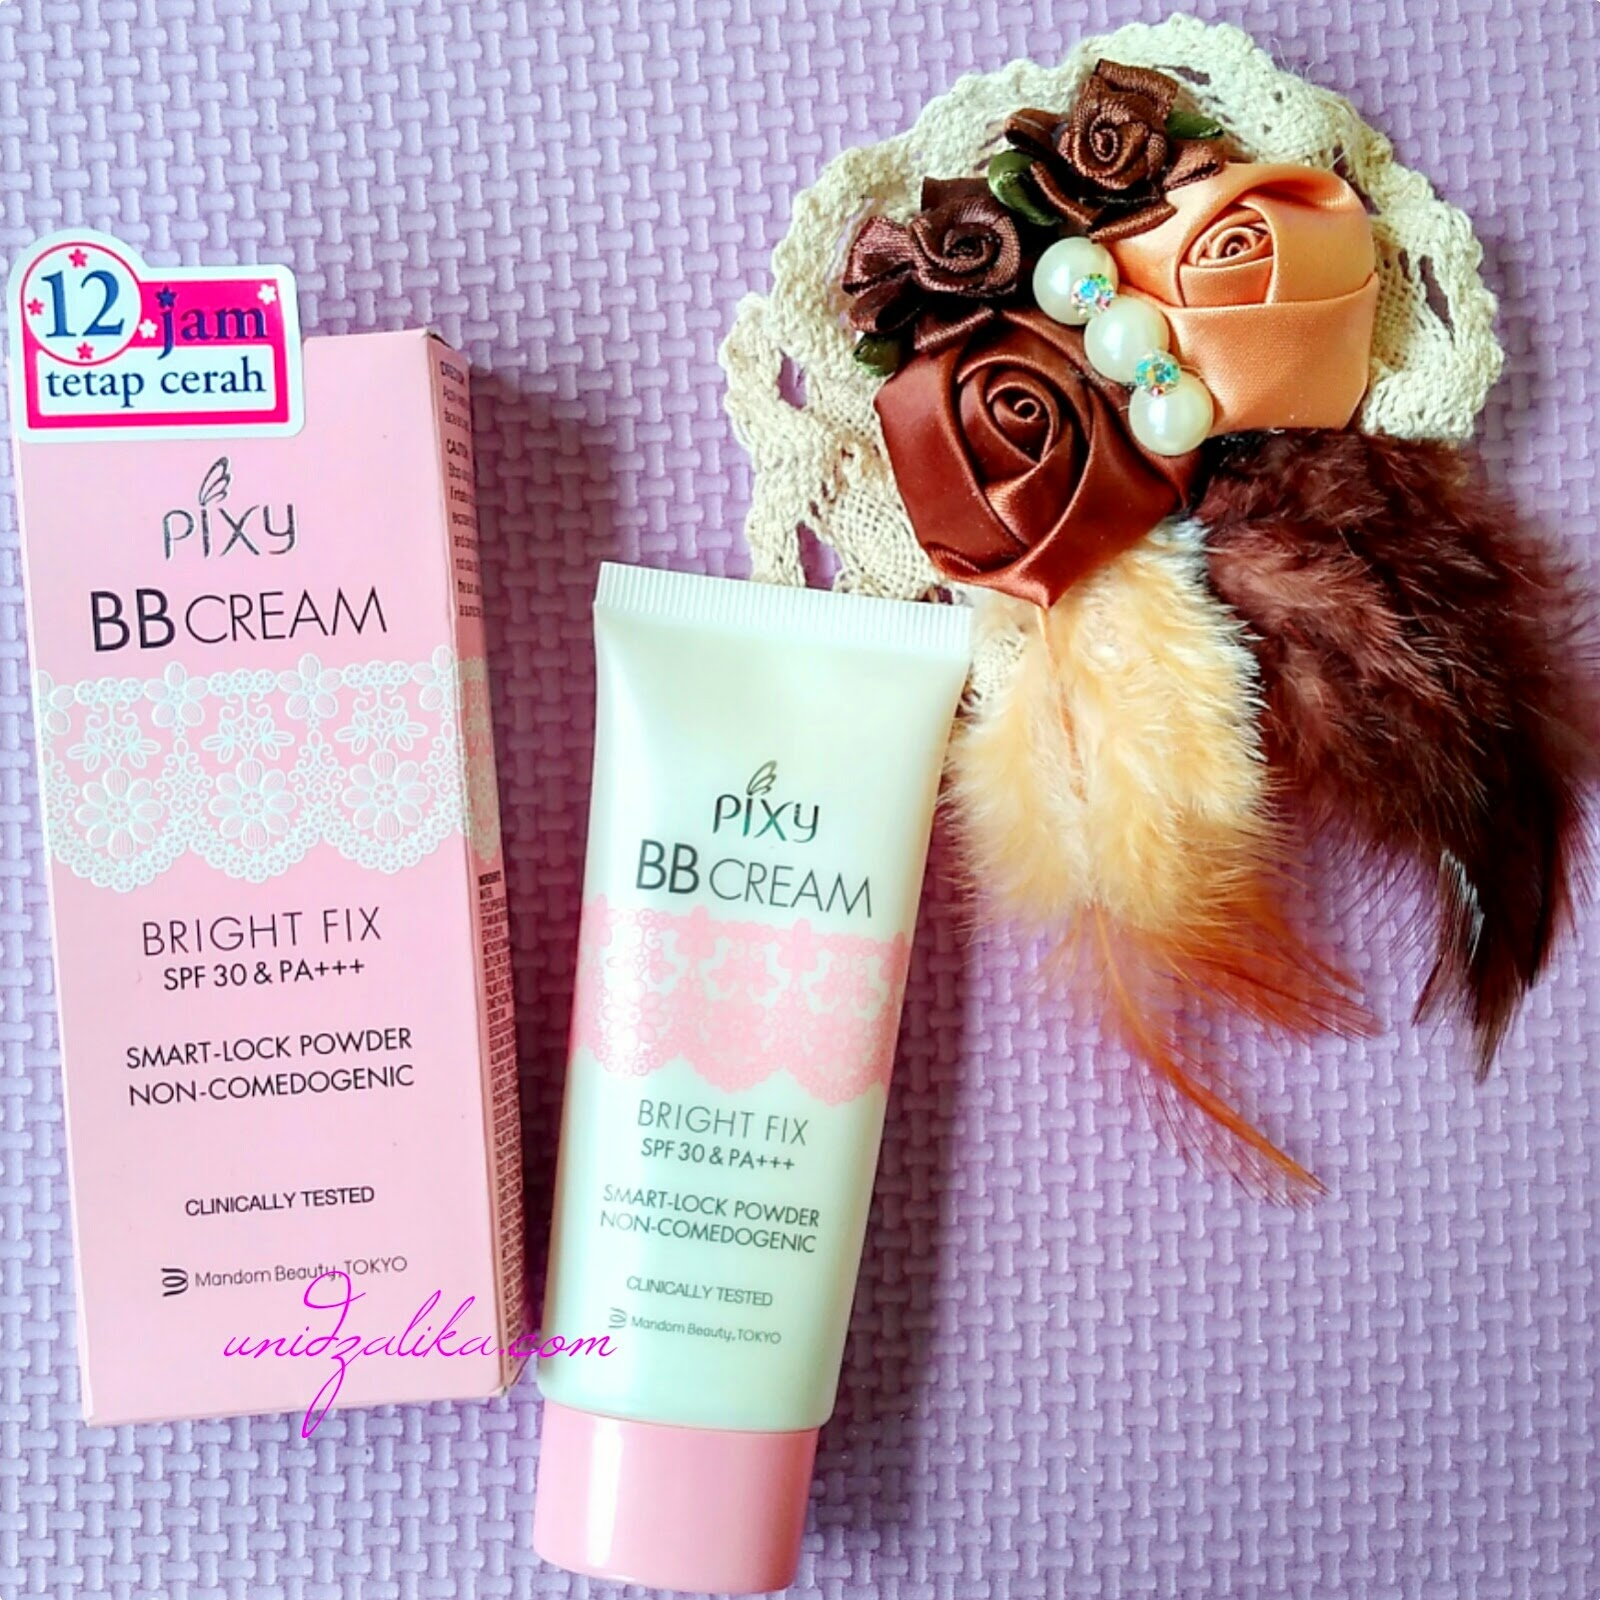 BB Cream Bright Fix SPF 30 PA Smart Look Powder Non edogenic Clinically Tested by Pixy 30ml